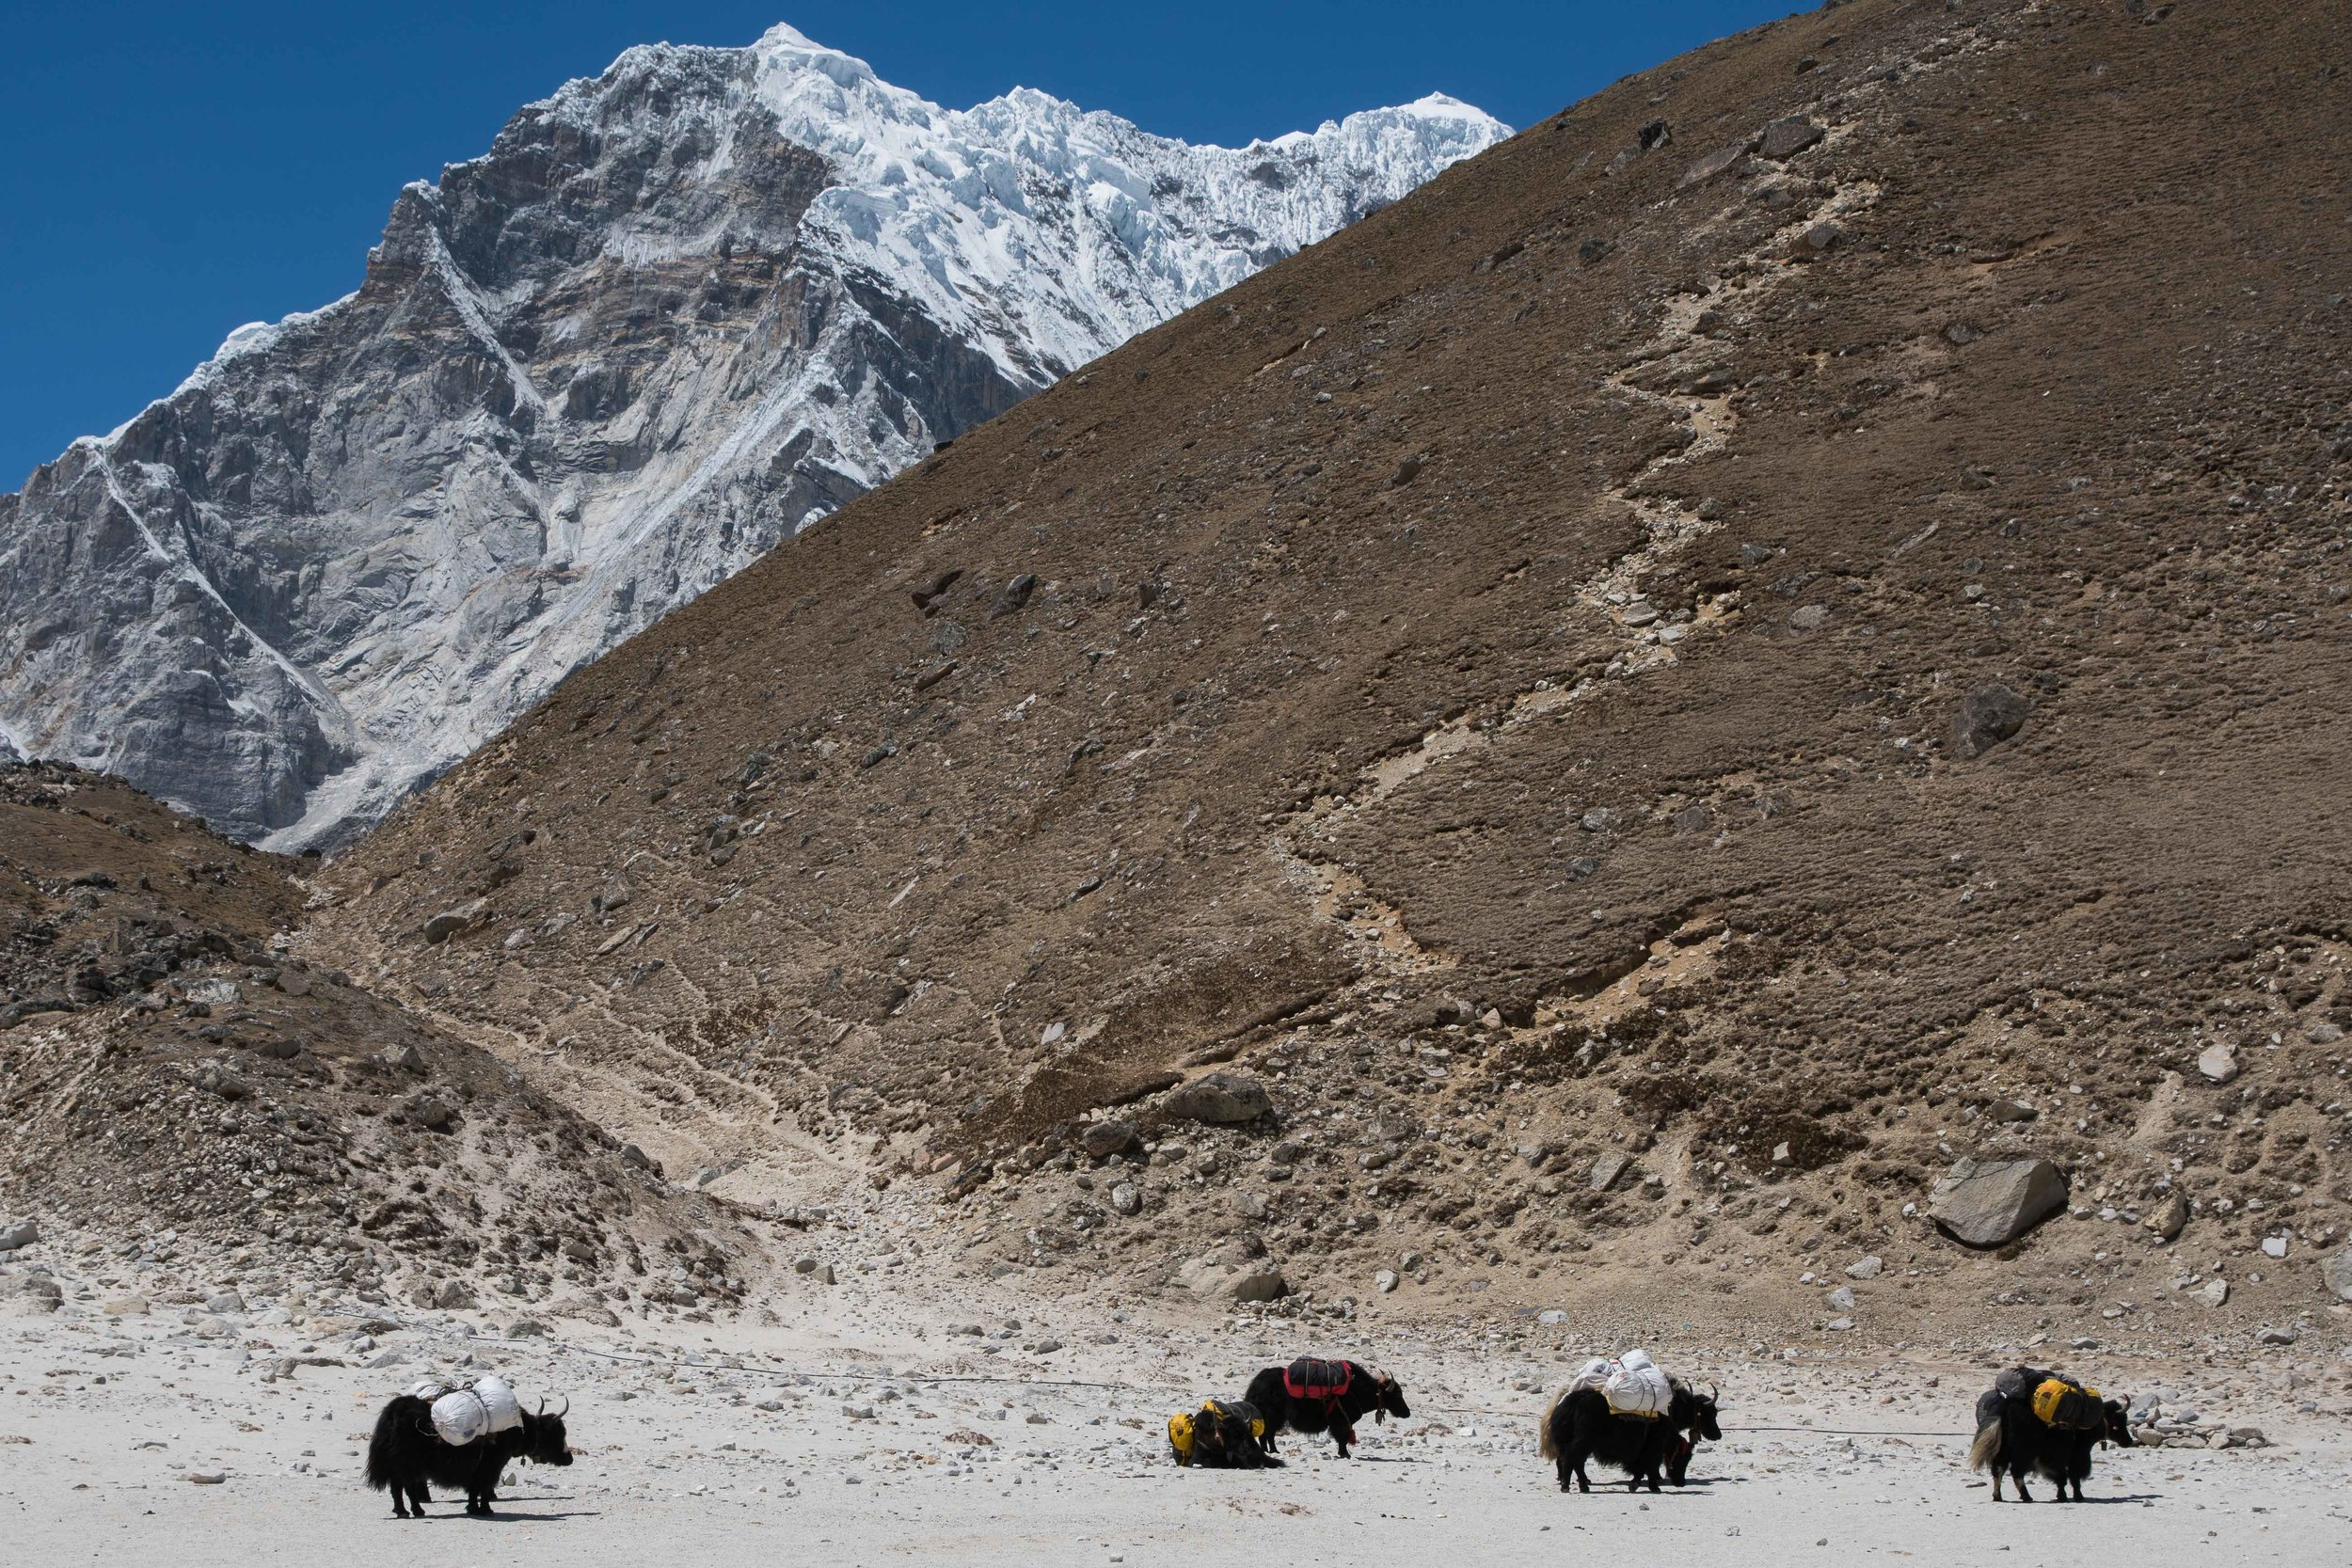 Yaks roam the sand pit in Gorak Shep.  Kala Patthar (18,530 ft; 5,649 m) rises just behind them with Chumbu (22,503 ft; 6,861 m) in the background.